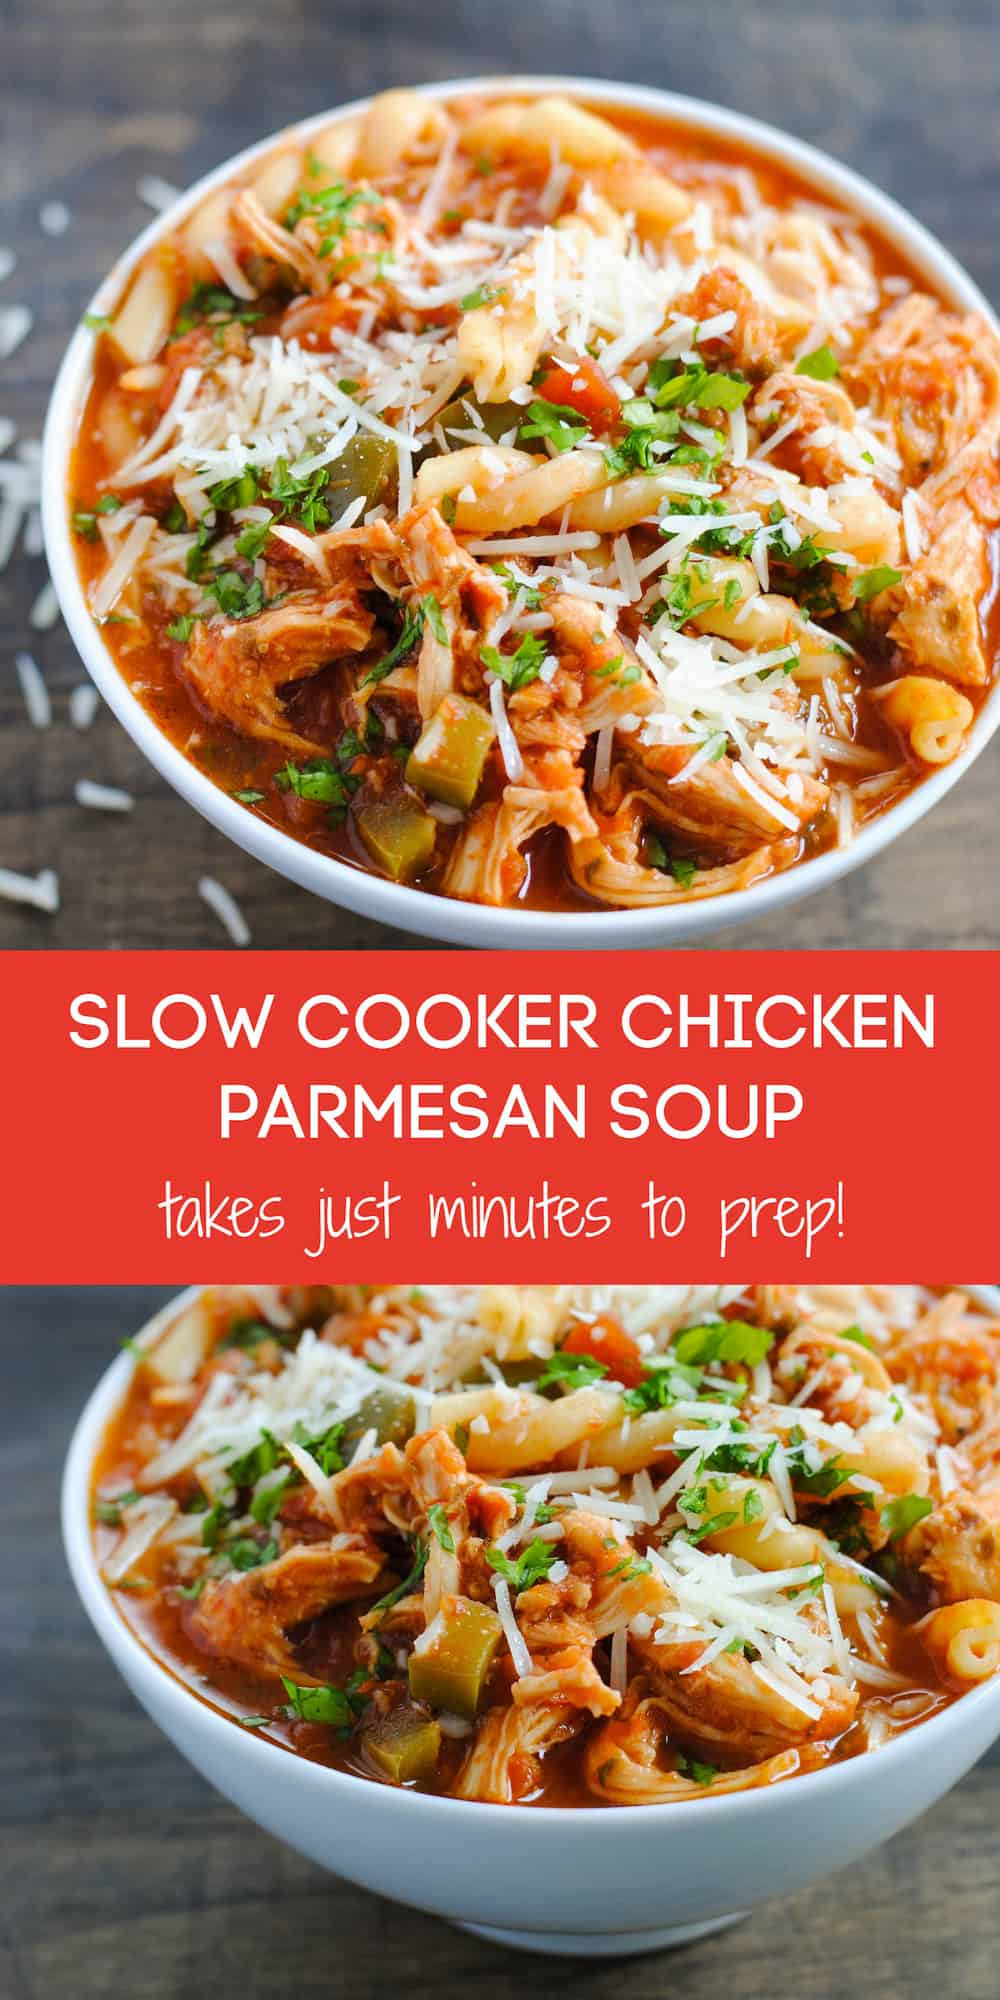 This Slow Cooker Chicken Parmesan Soup has all of the flavors of decadent Chicken Parmesan in a waistline-friendly crockpot soup! This family-friendly dinner recipe takes just minutes to prep. | foxeslovelemons.com